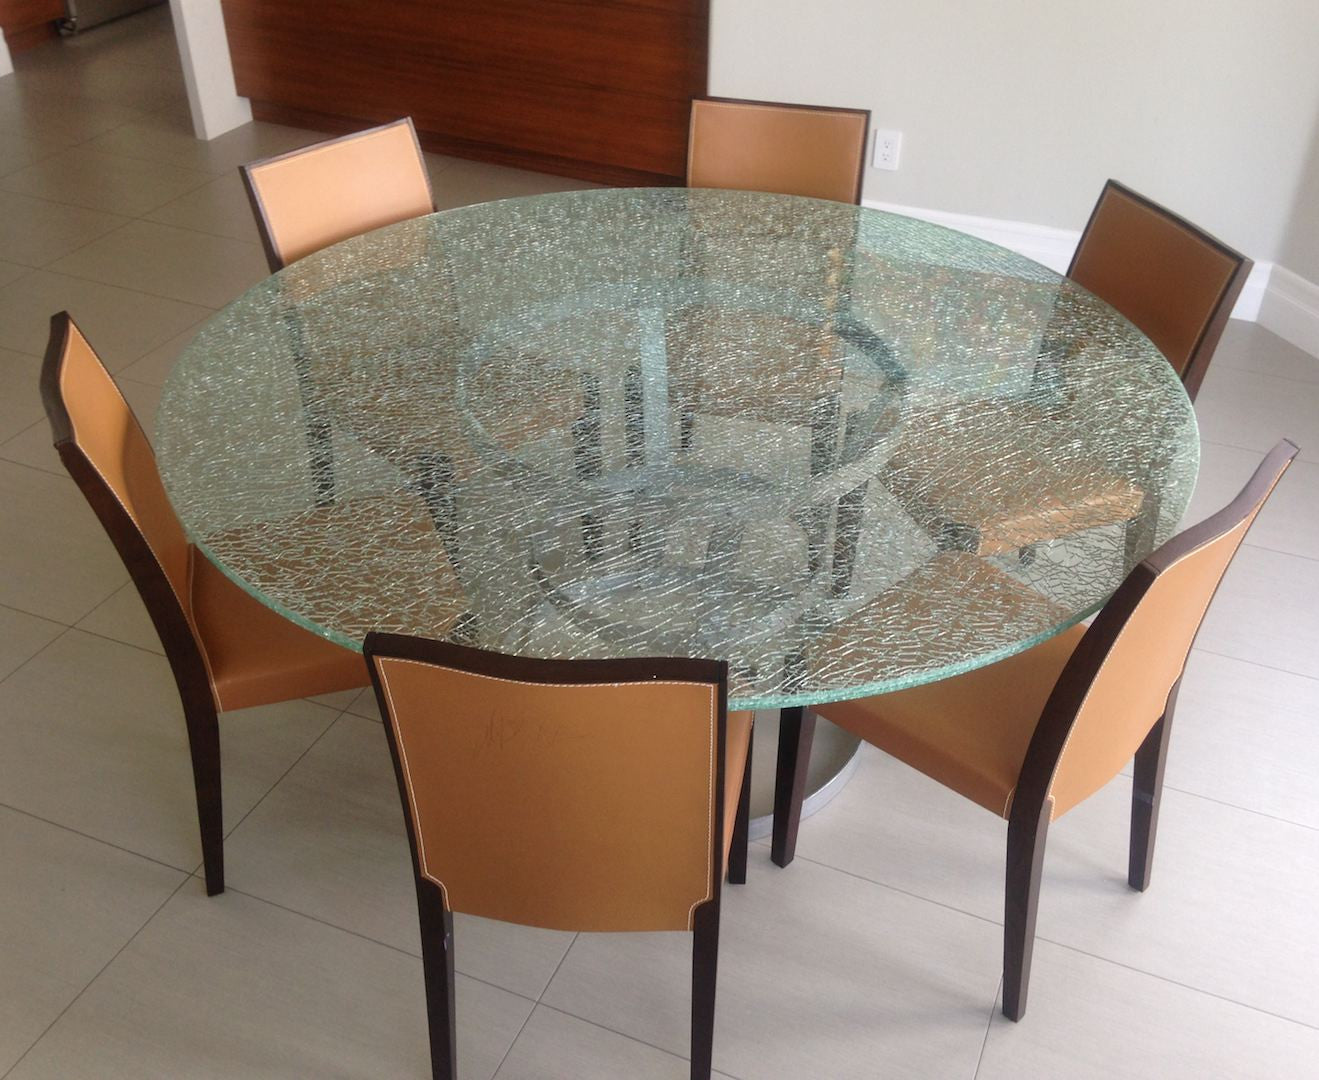 Round glass table tops - Round Crackle Glass Dining Table With Tripod Metal Base Hover To Zoom